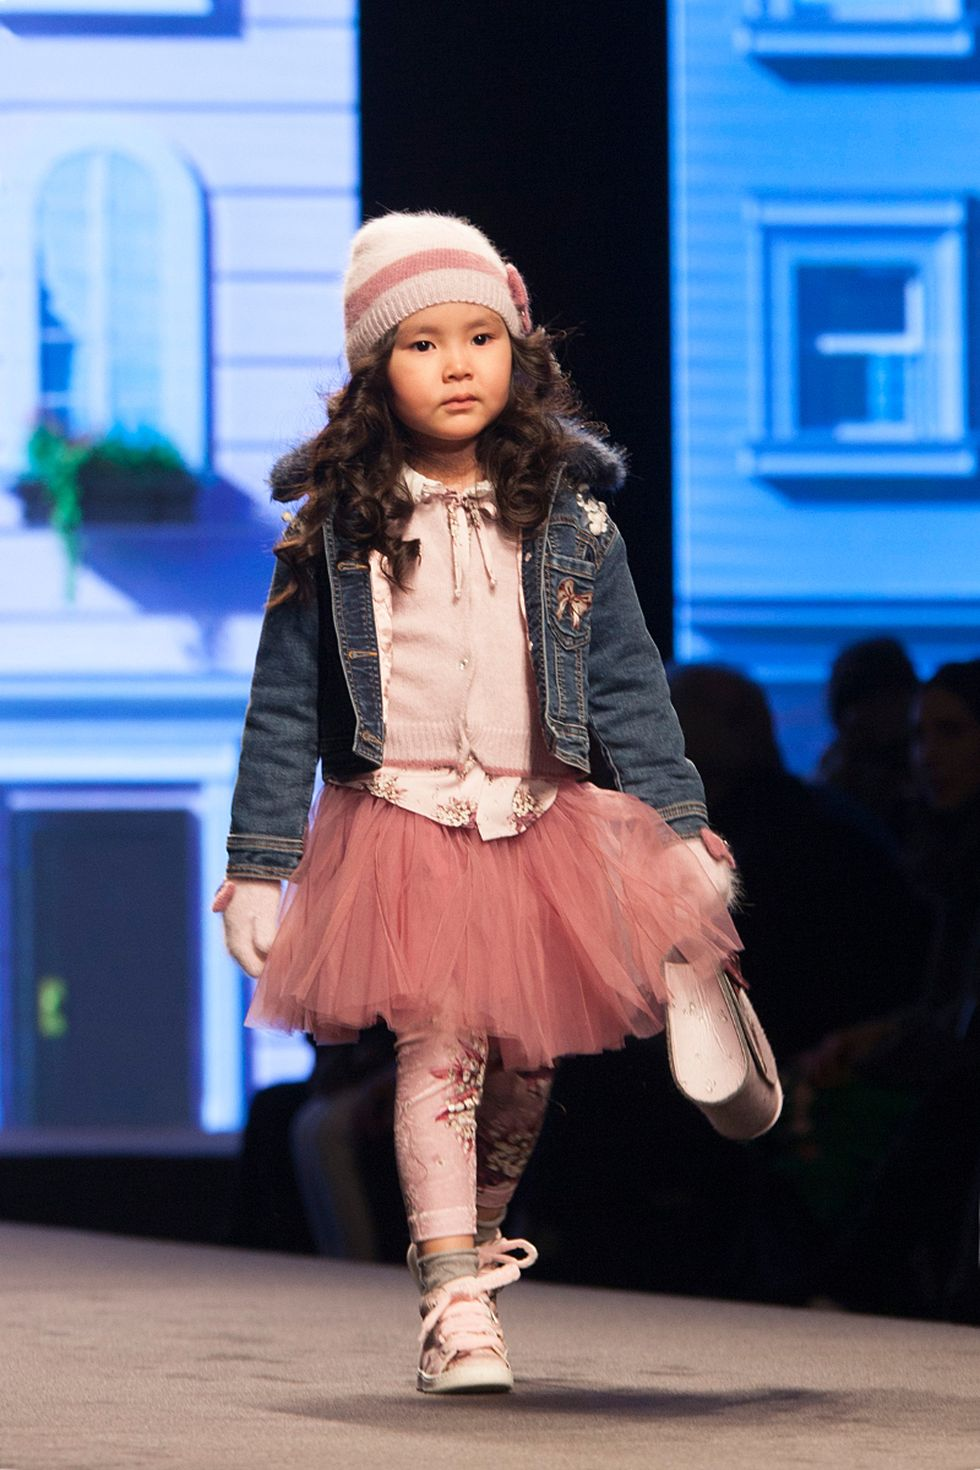 Cute kids fashions outfits for fall and winter 1 - Fashion ...